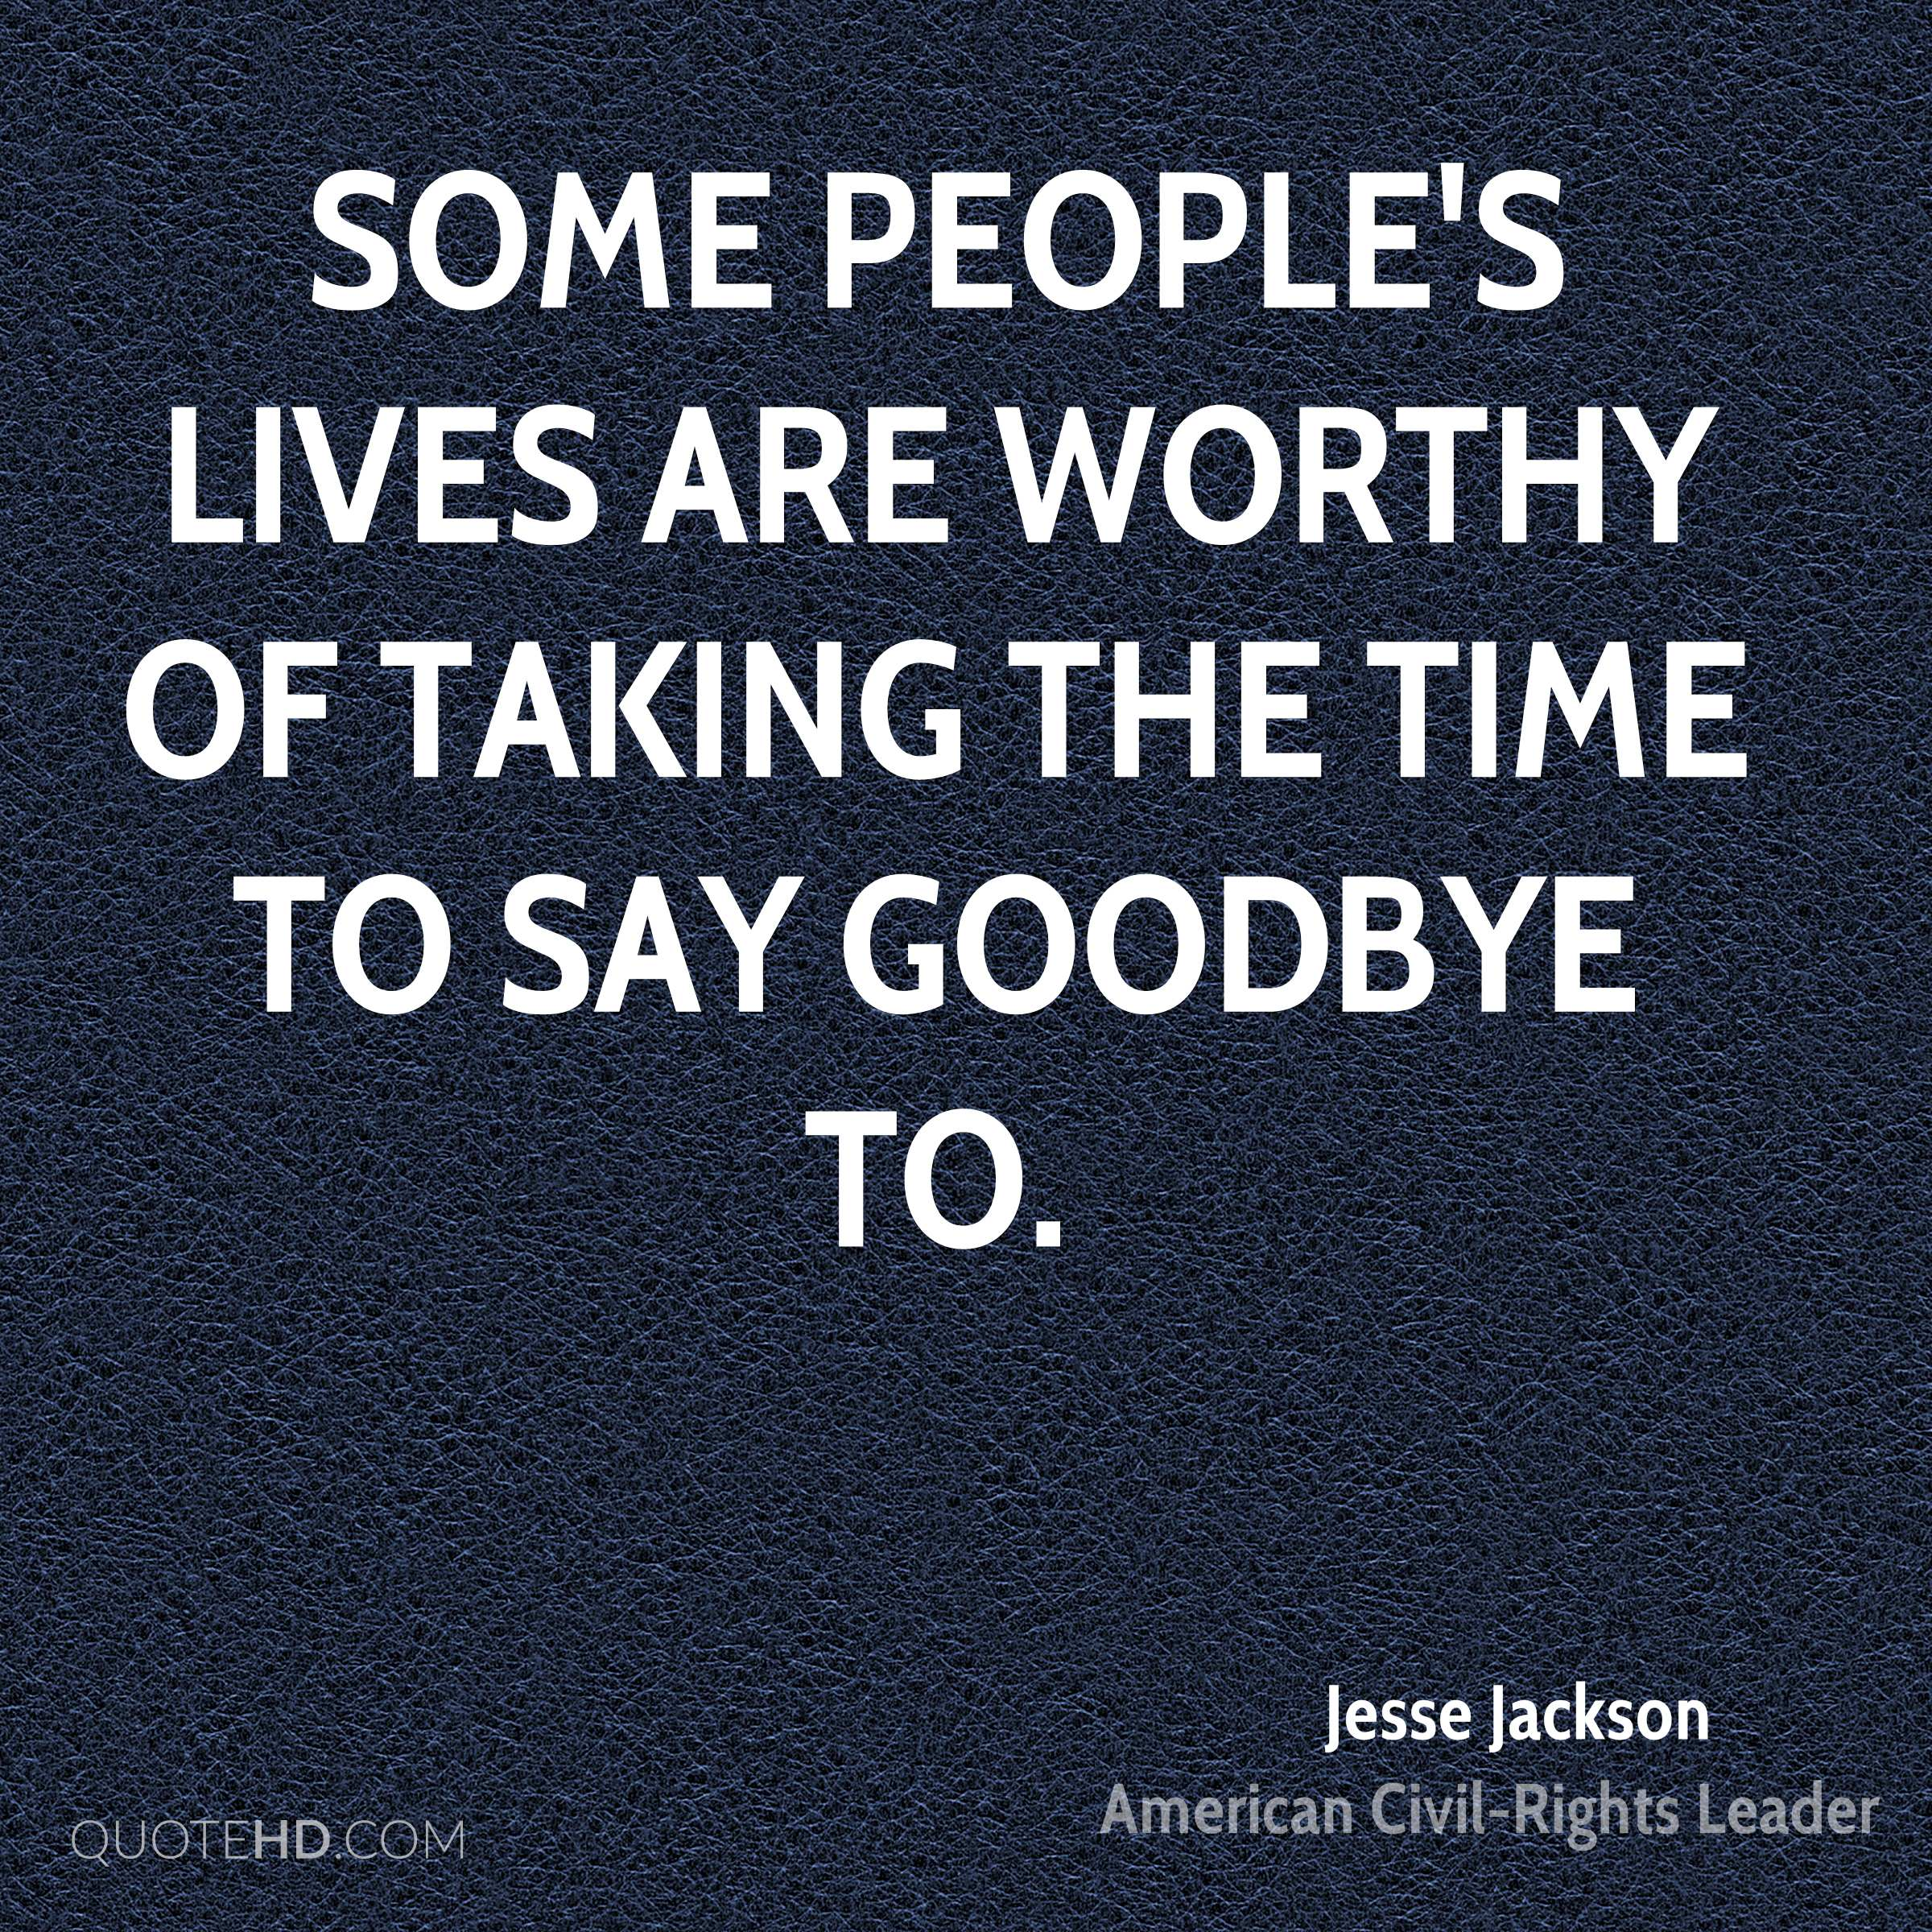 Some people's lives are worthy of taking the time to say goodbye to.